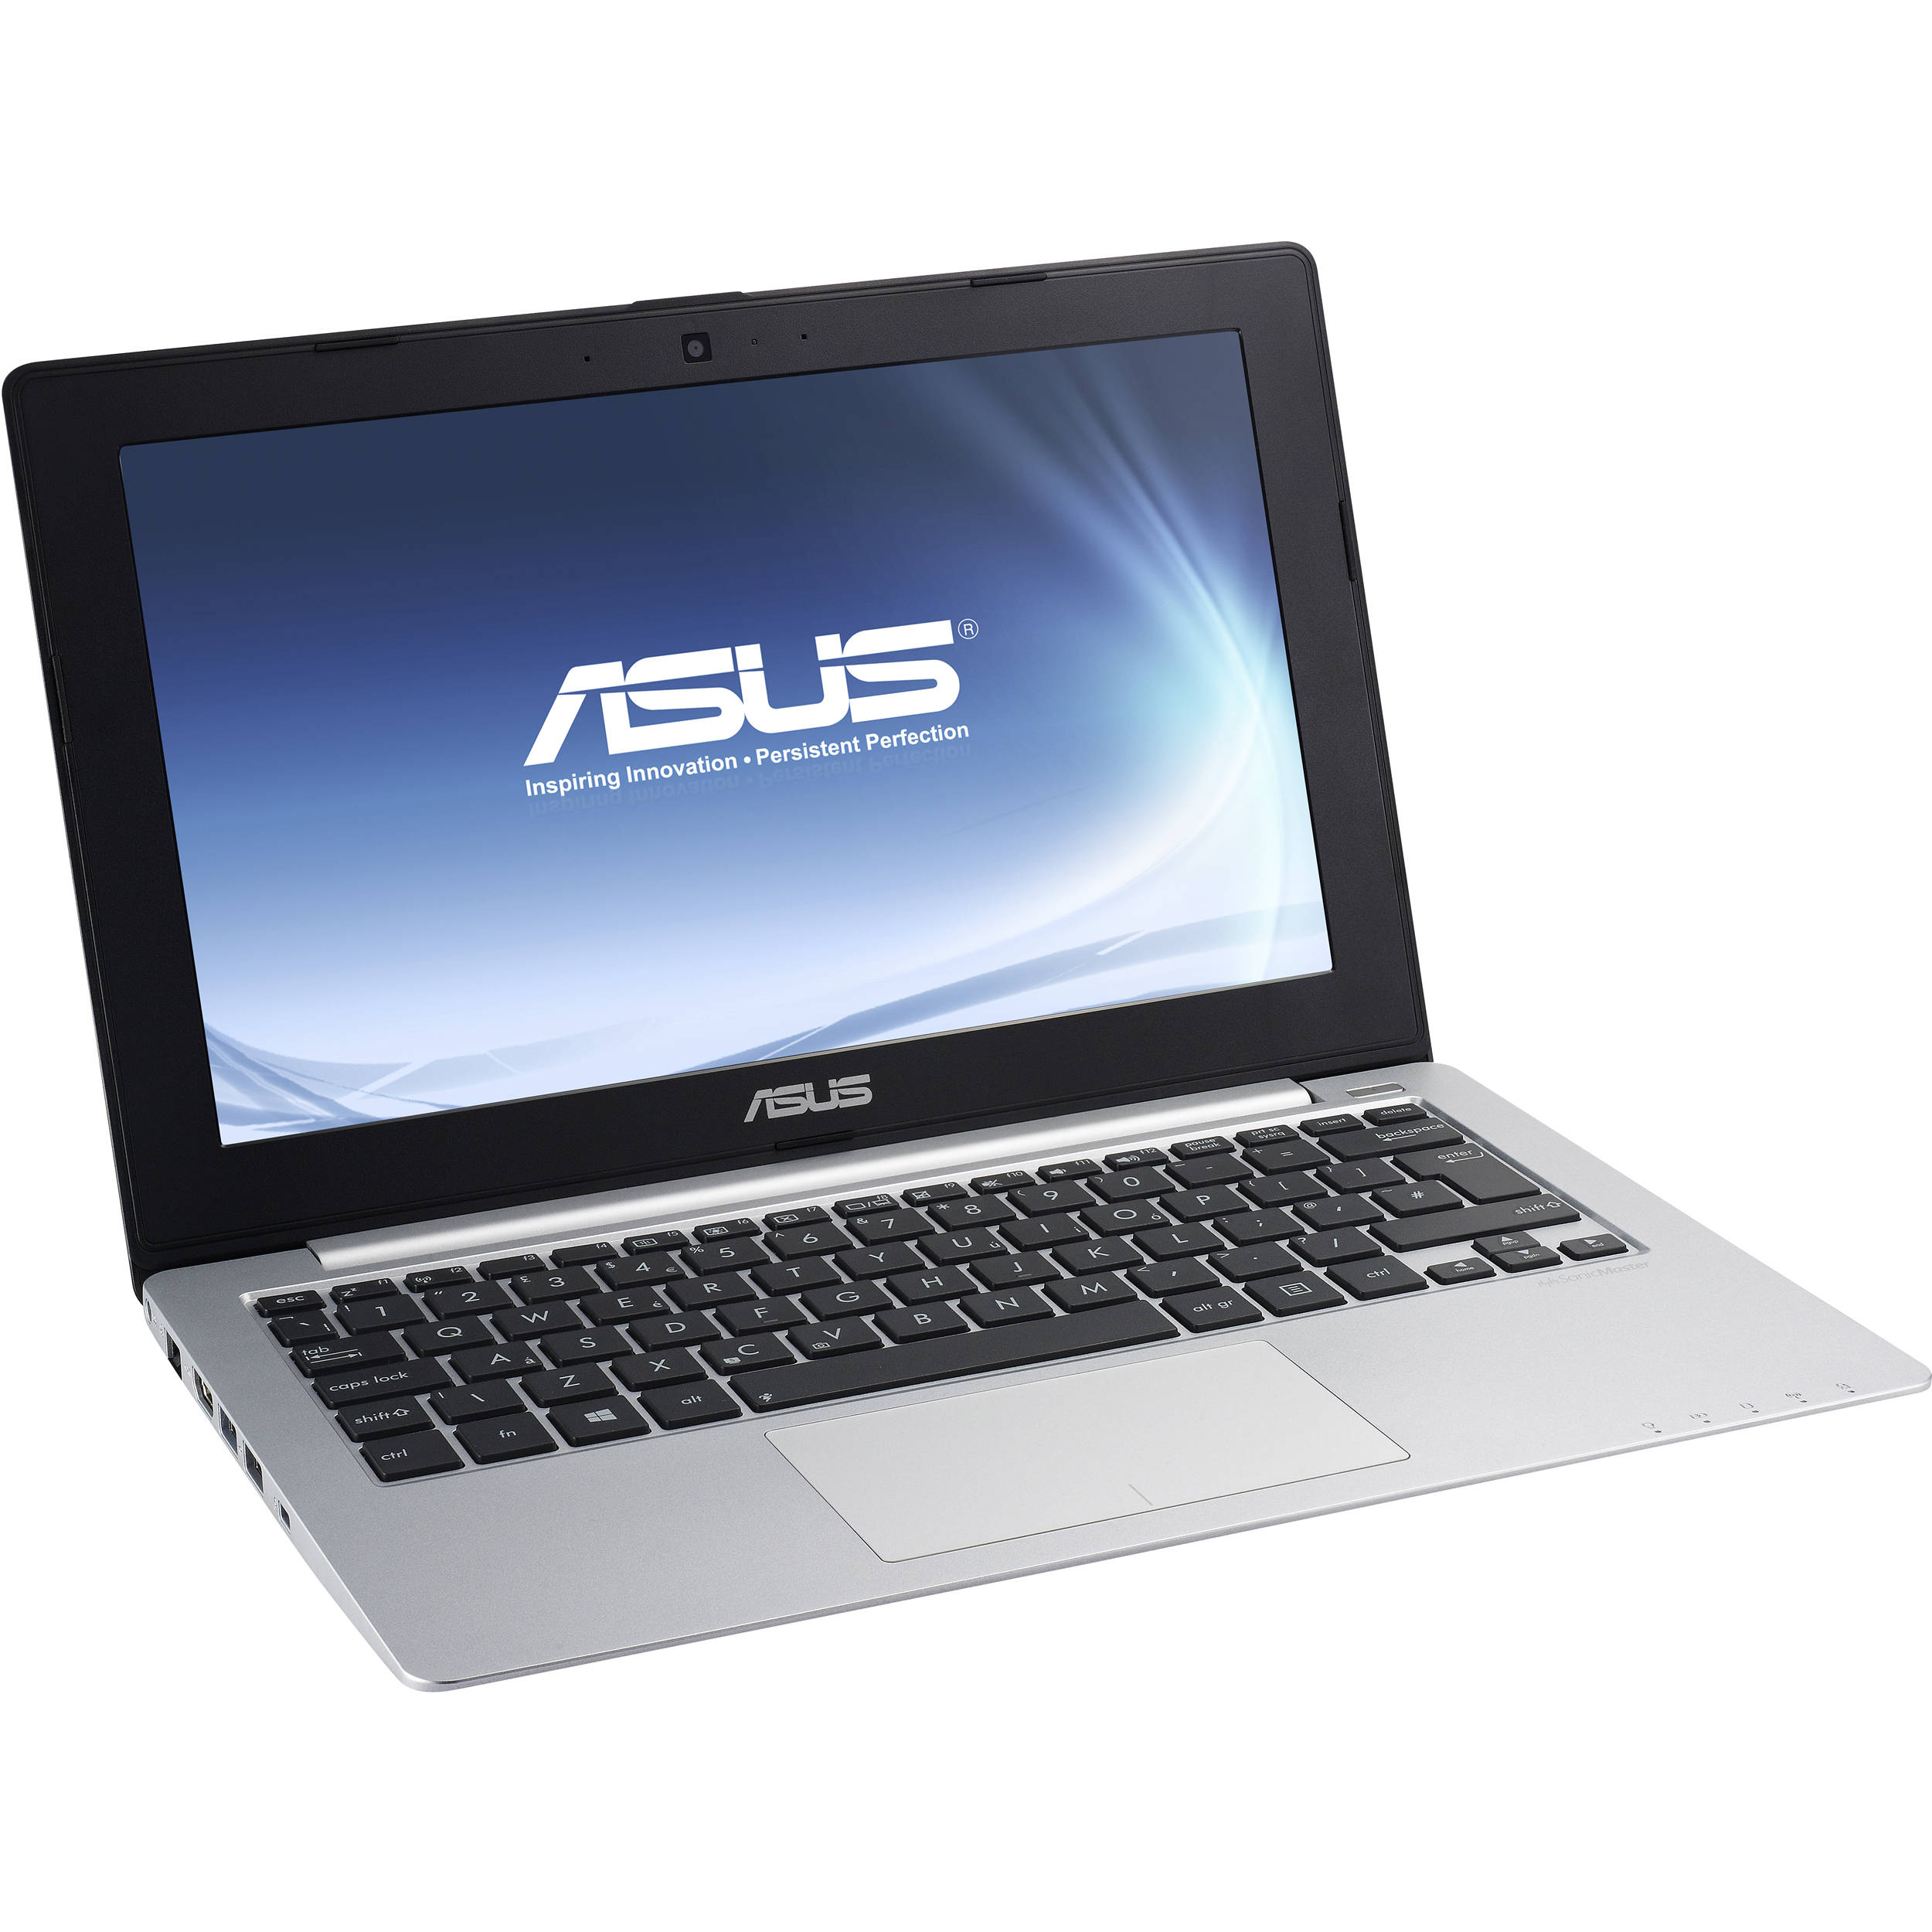 ASUS X201EP WIRELESS RADIO CONTROL DOWNLOAD DRIVERS